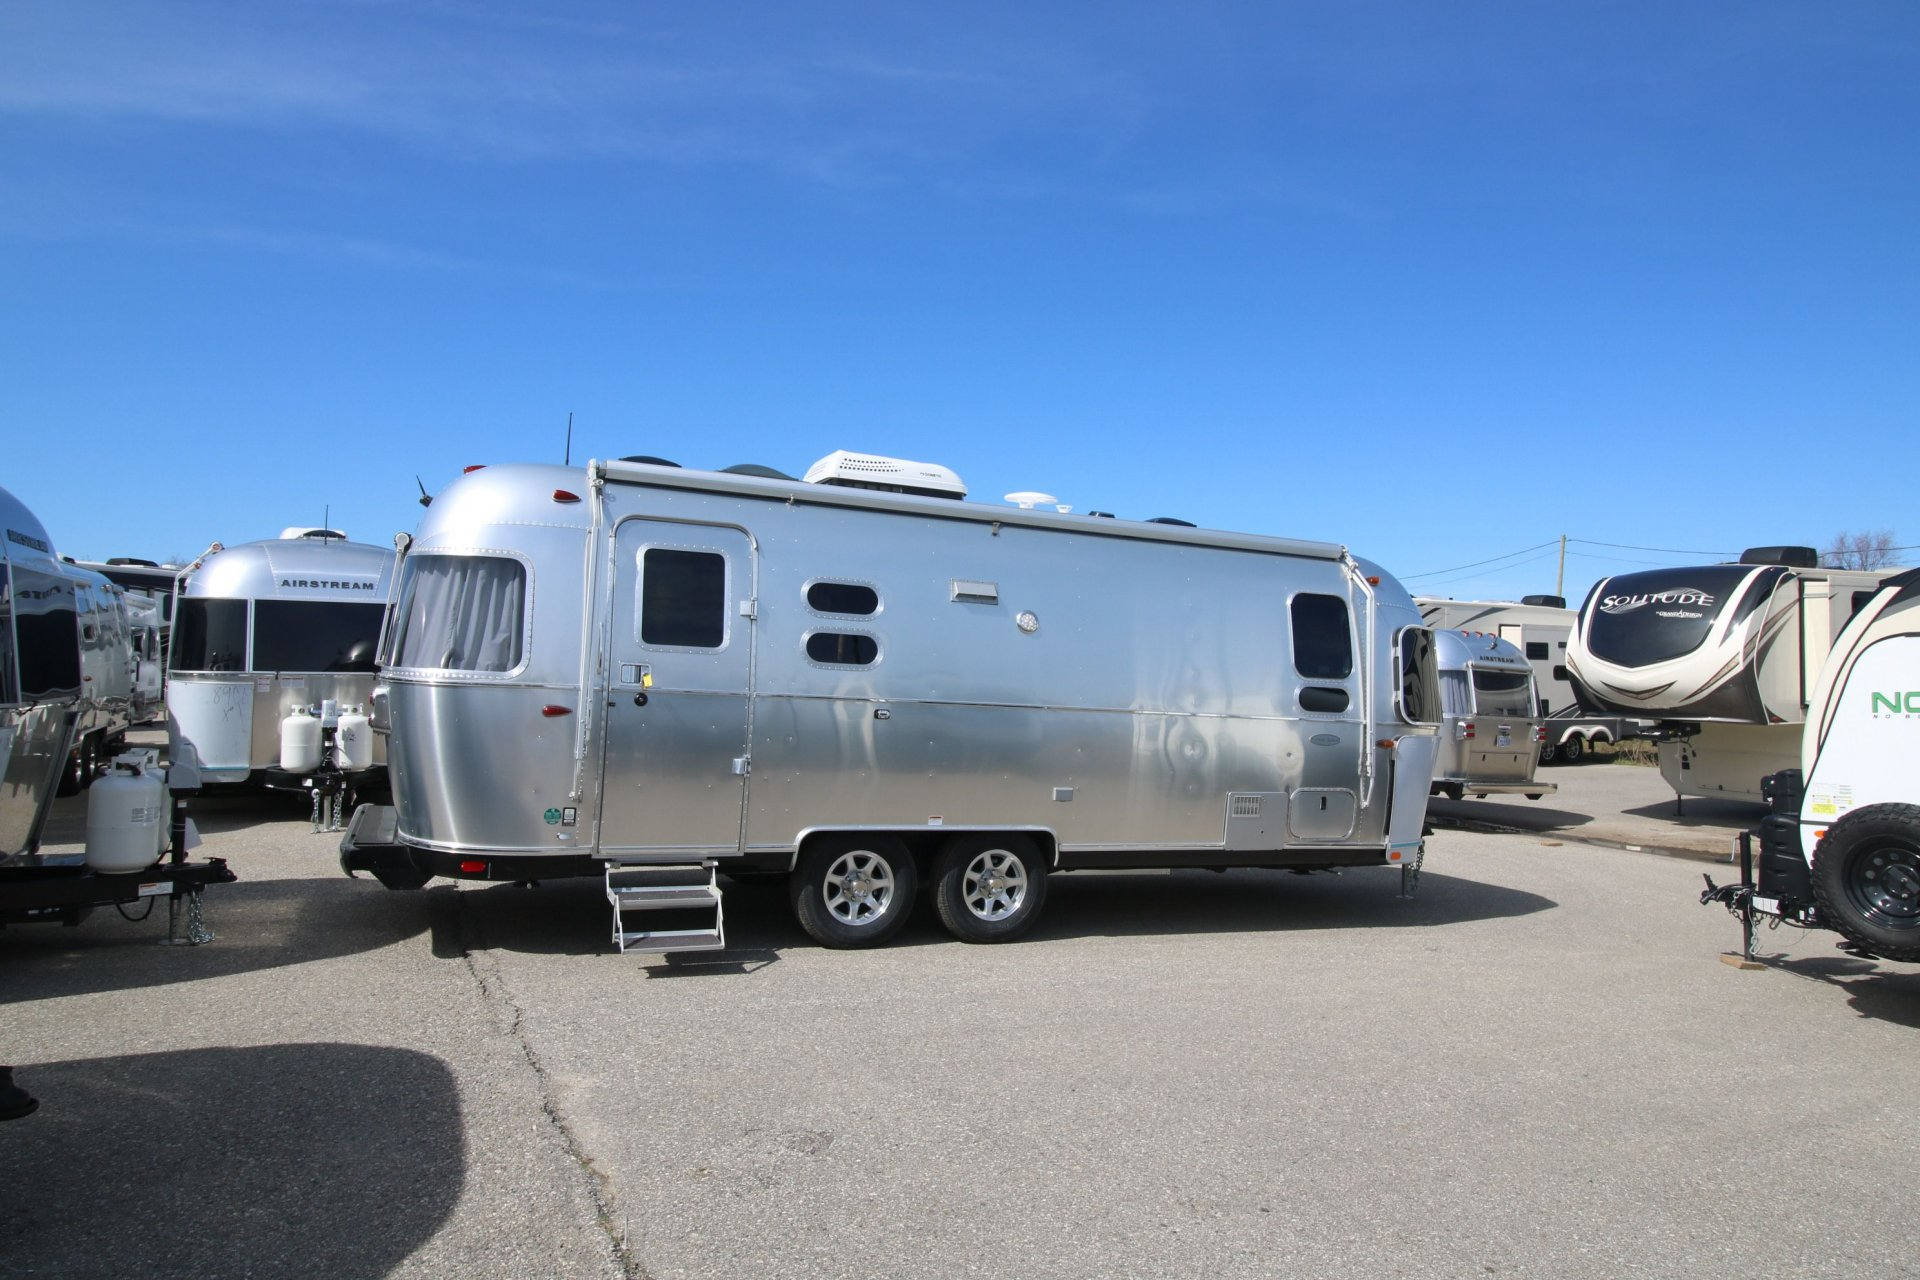 2019 AIRSTREAM AIRSTREAM 25 FB TWIN FLYING CLOUD